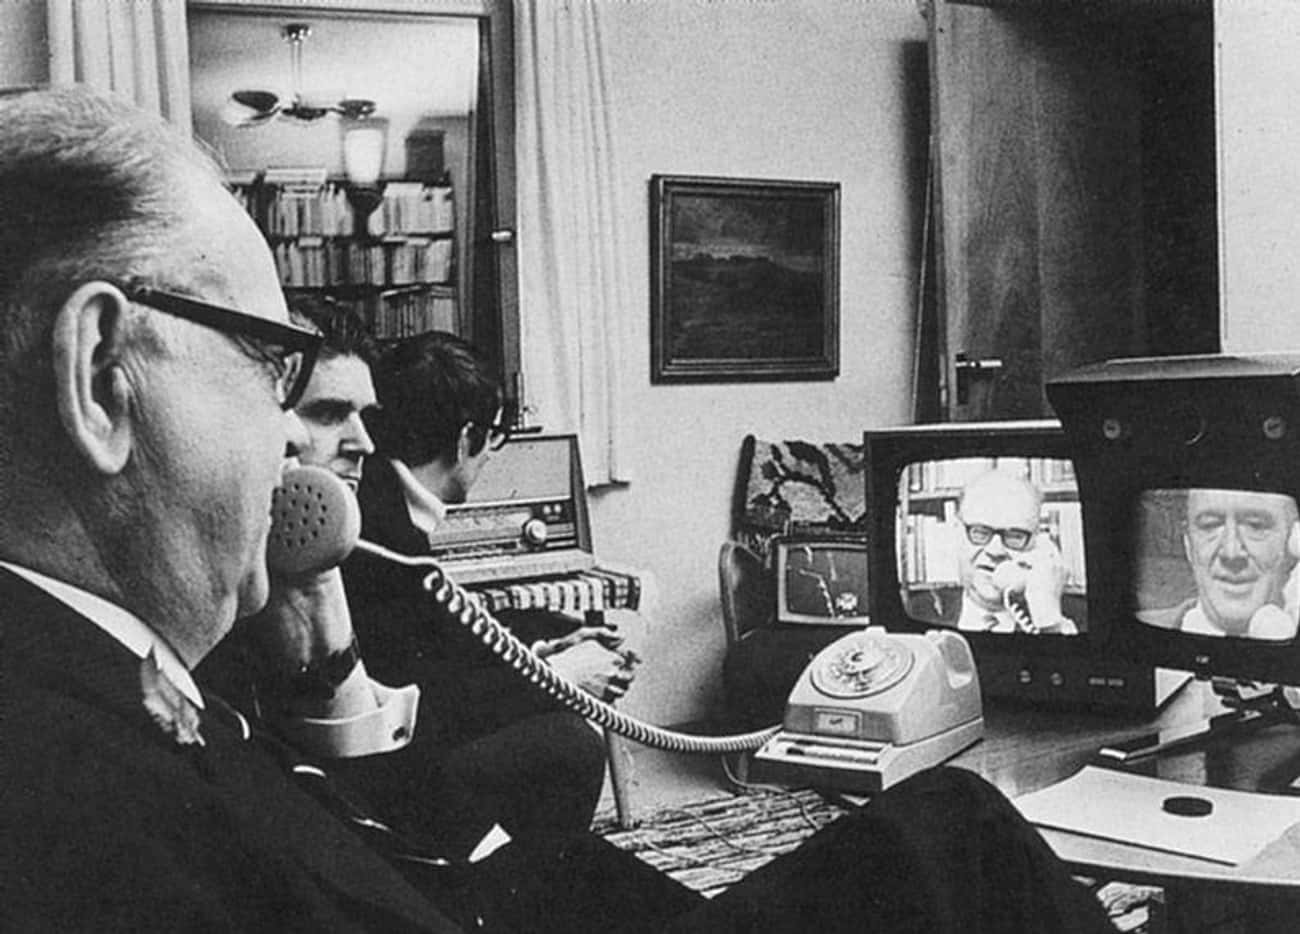 Picturephone (Video Chat) Inve is listed (or ranked) 1 on the list Photos Of 1960s Inventions When They Were New And Cool